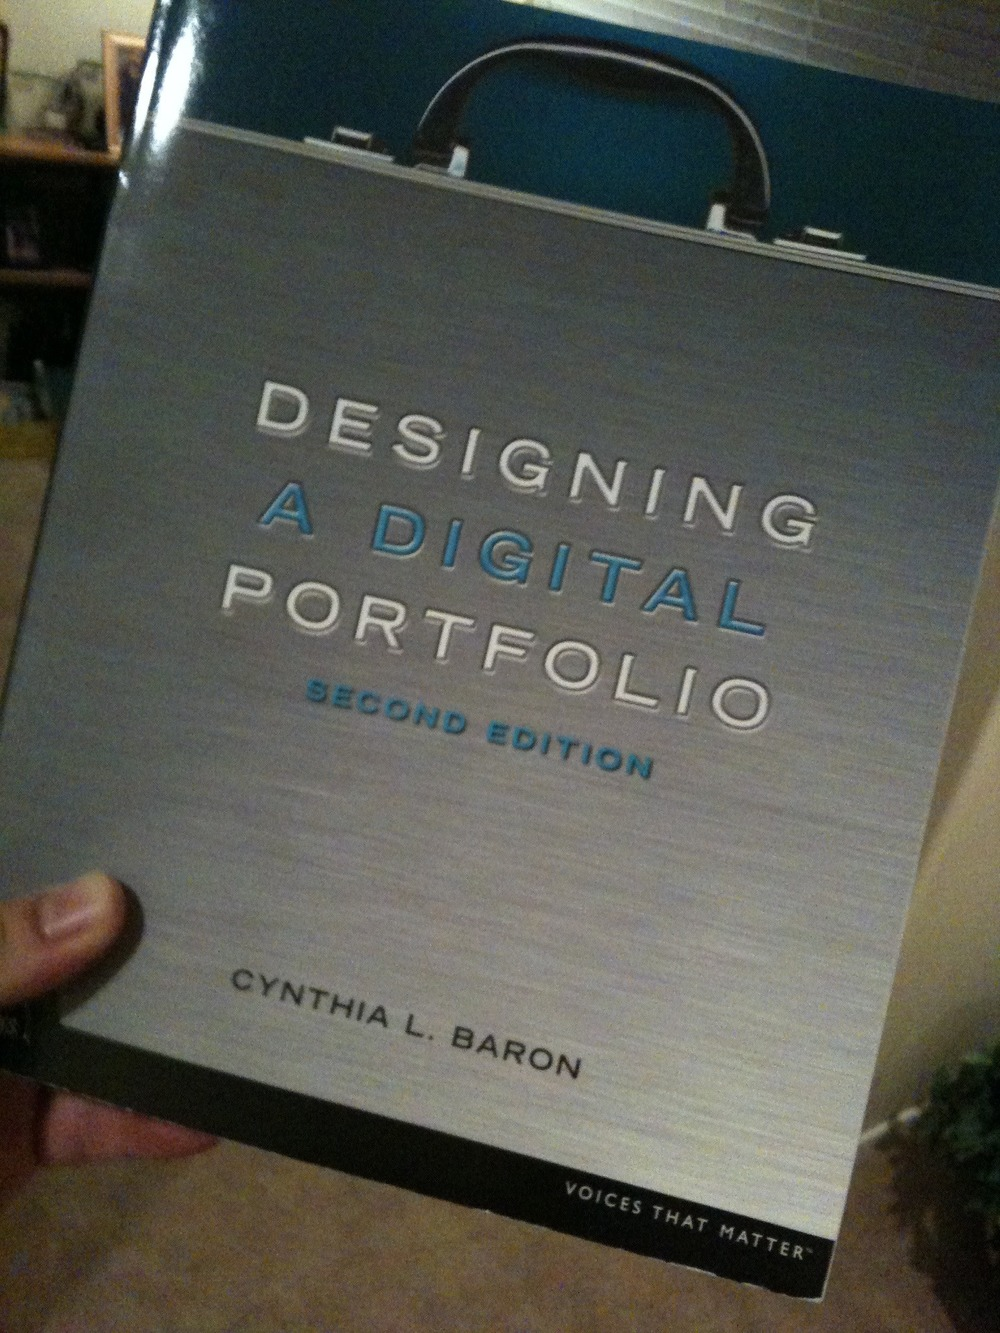 Shameless self promotion: Proud to be included again in 2nd Edition of Designing A Digital Portfolio.